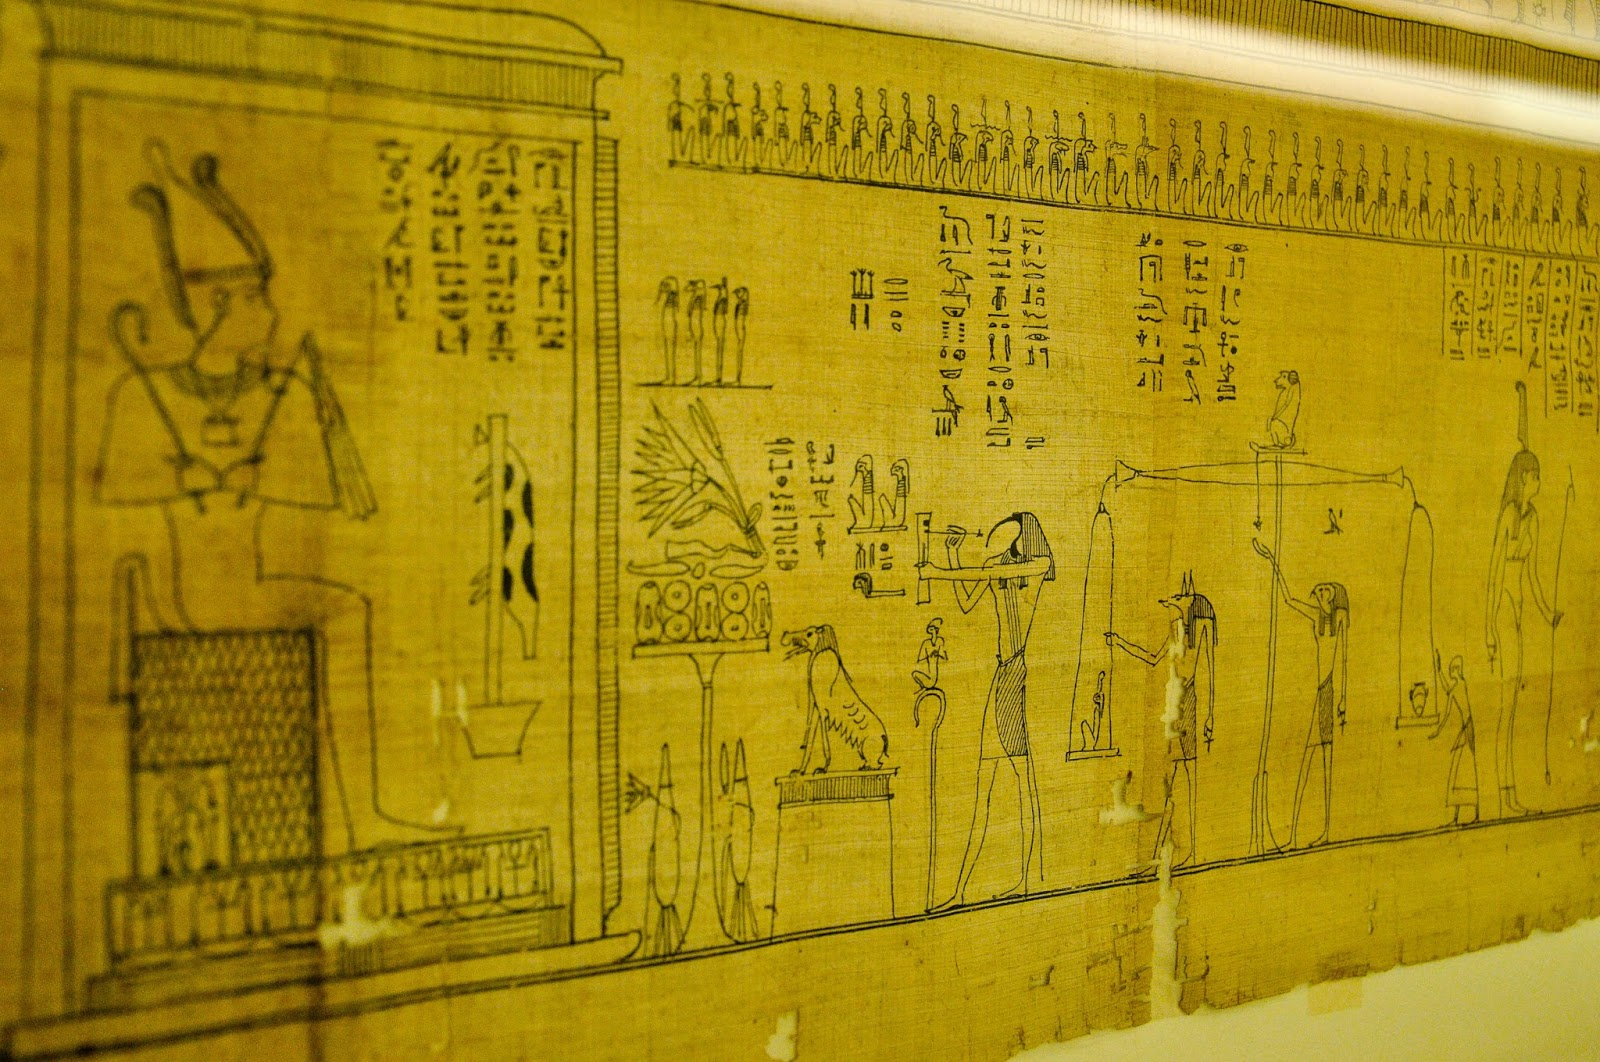 Close-up of Iuefankh's Book of the Dead, Cyperus Papyrus, Ptolomaic period (332-30 BC), Egyptian Museum, Turin, Italy